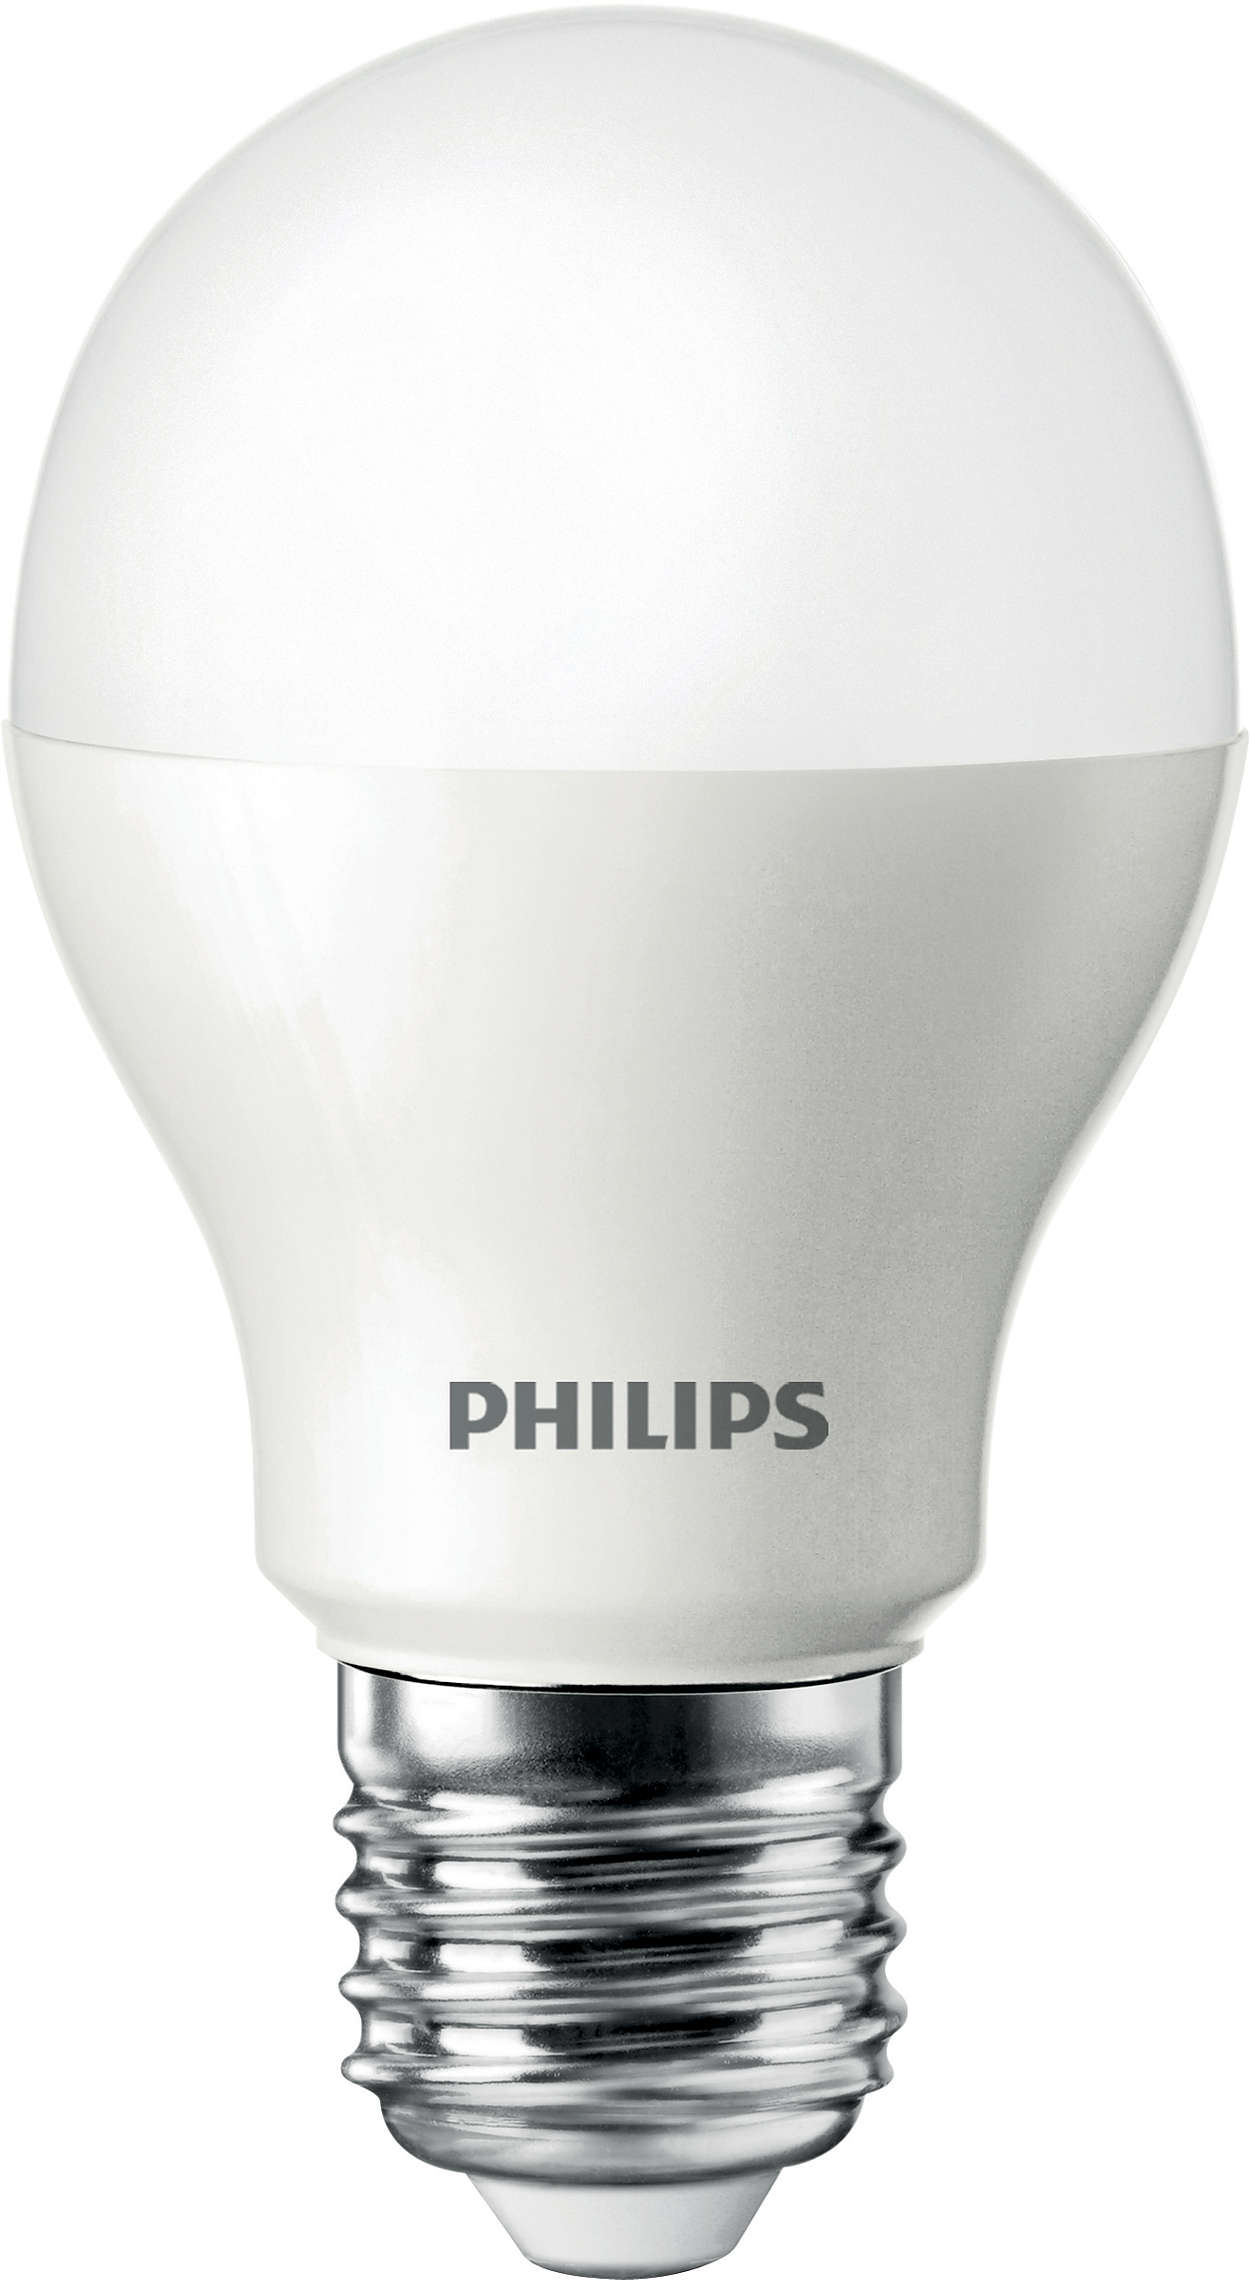 Led l mpada 8718696463109 philips for Lampade e27 a led